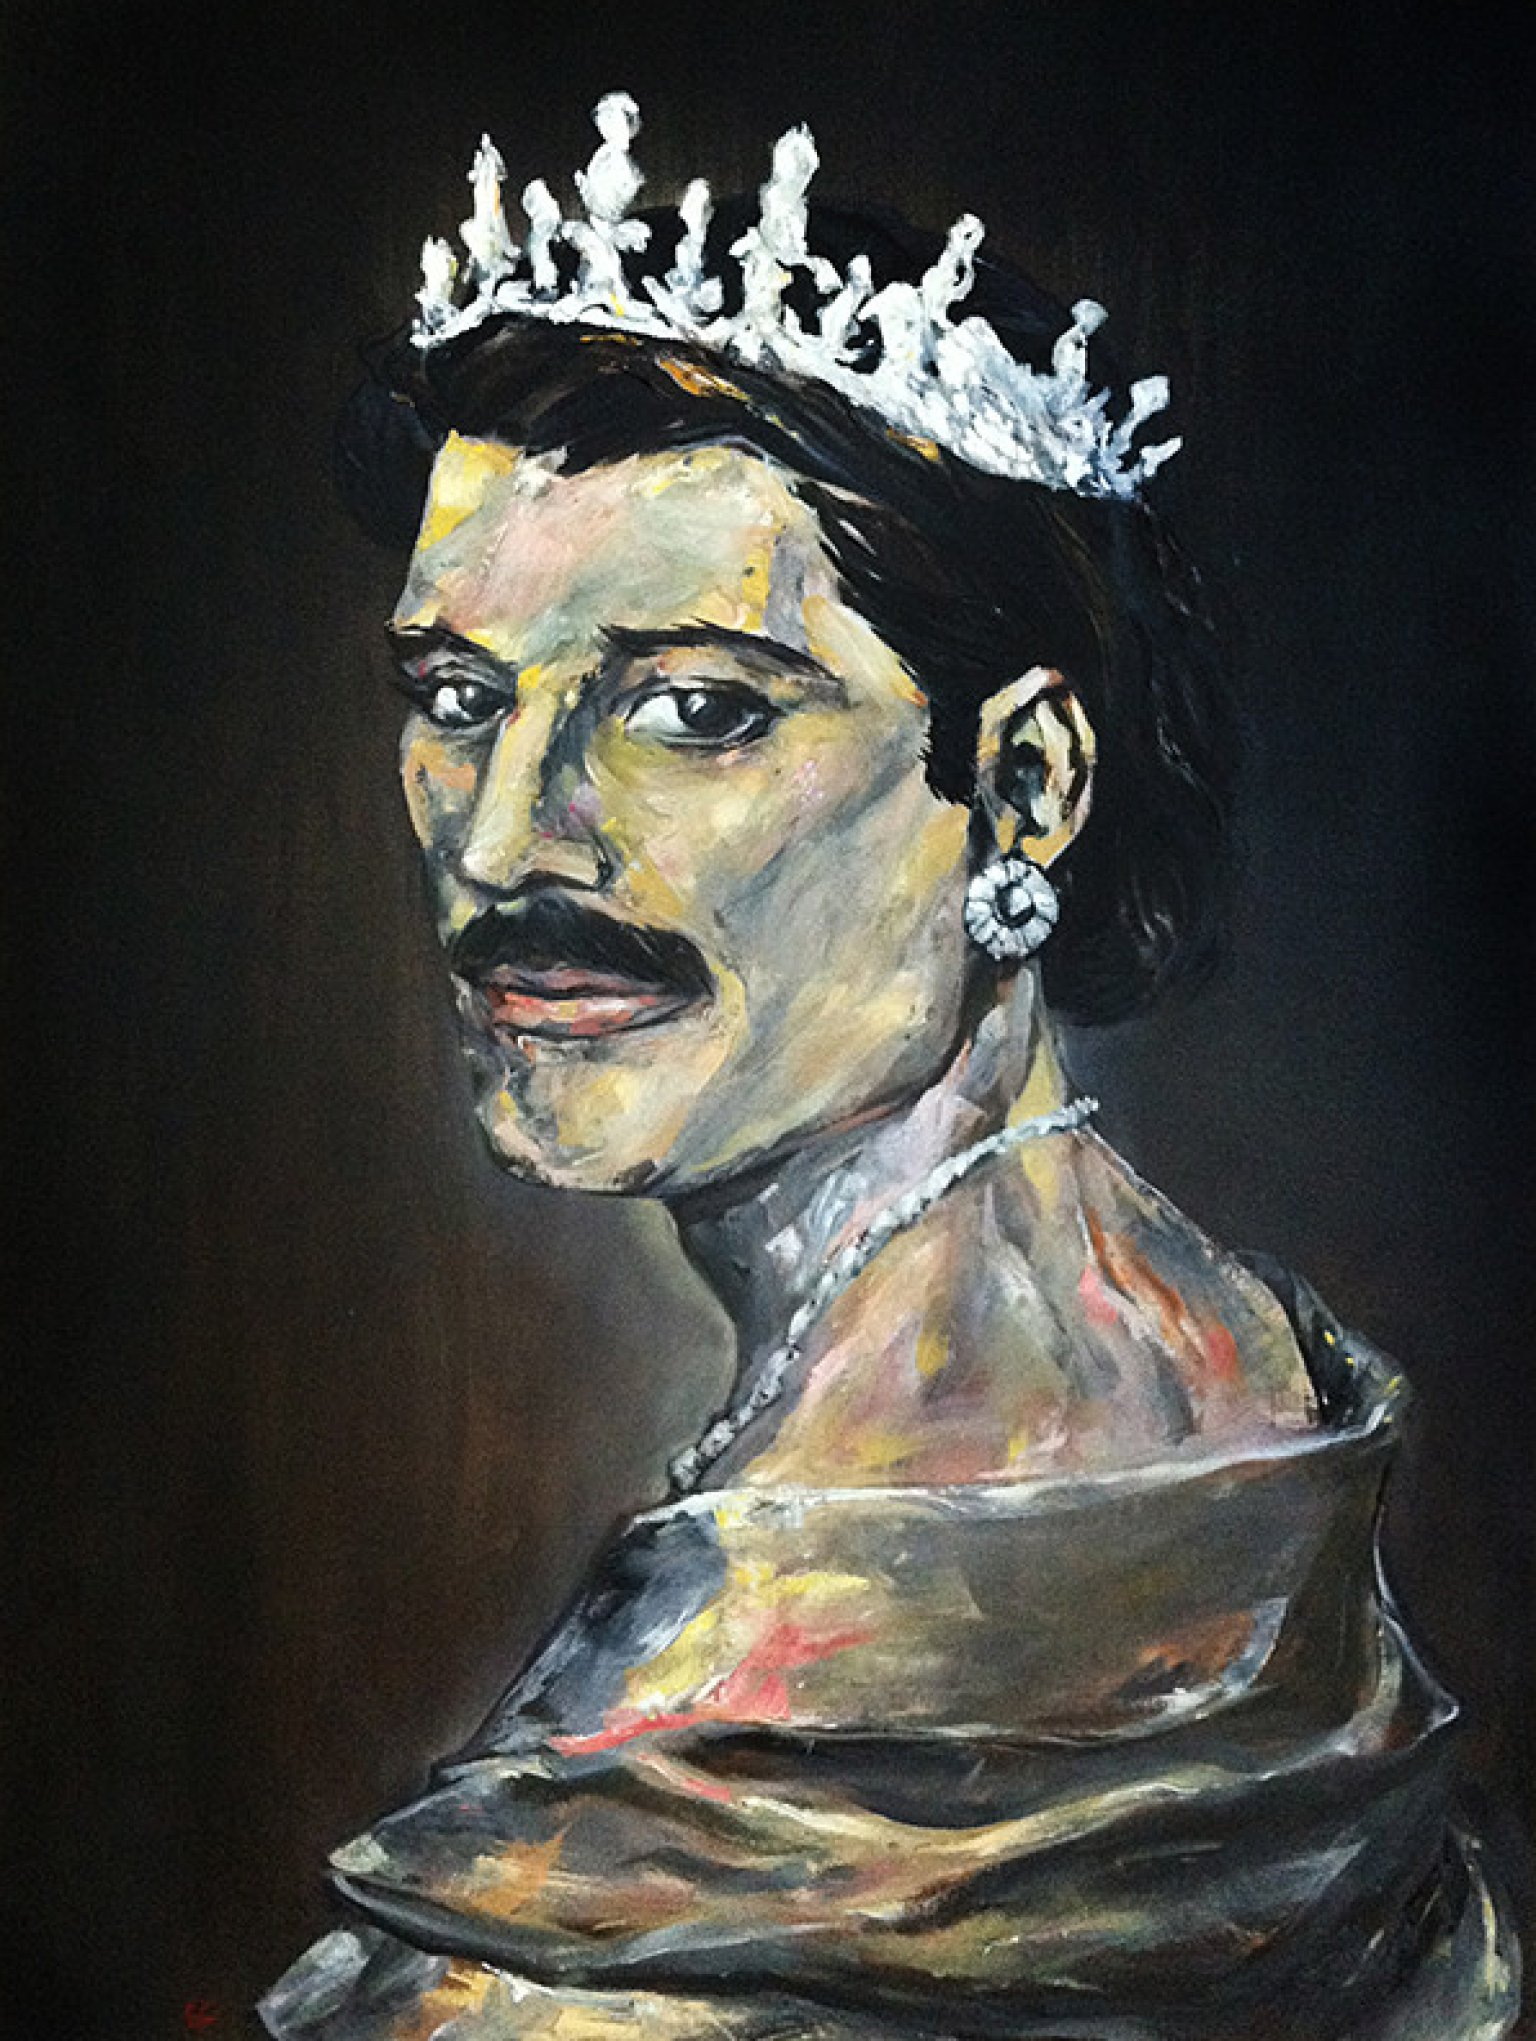 freddie mercury amp queens on canvases photos huffpost